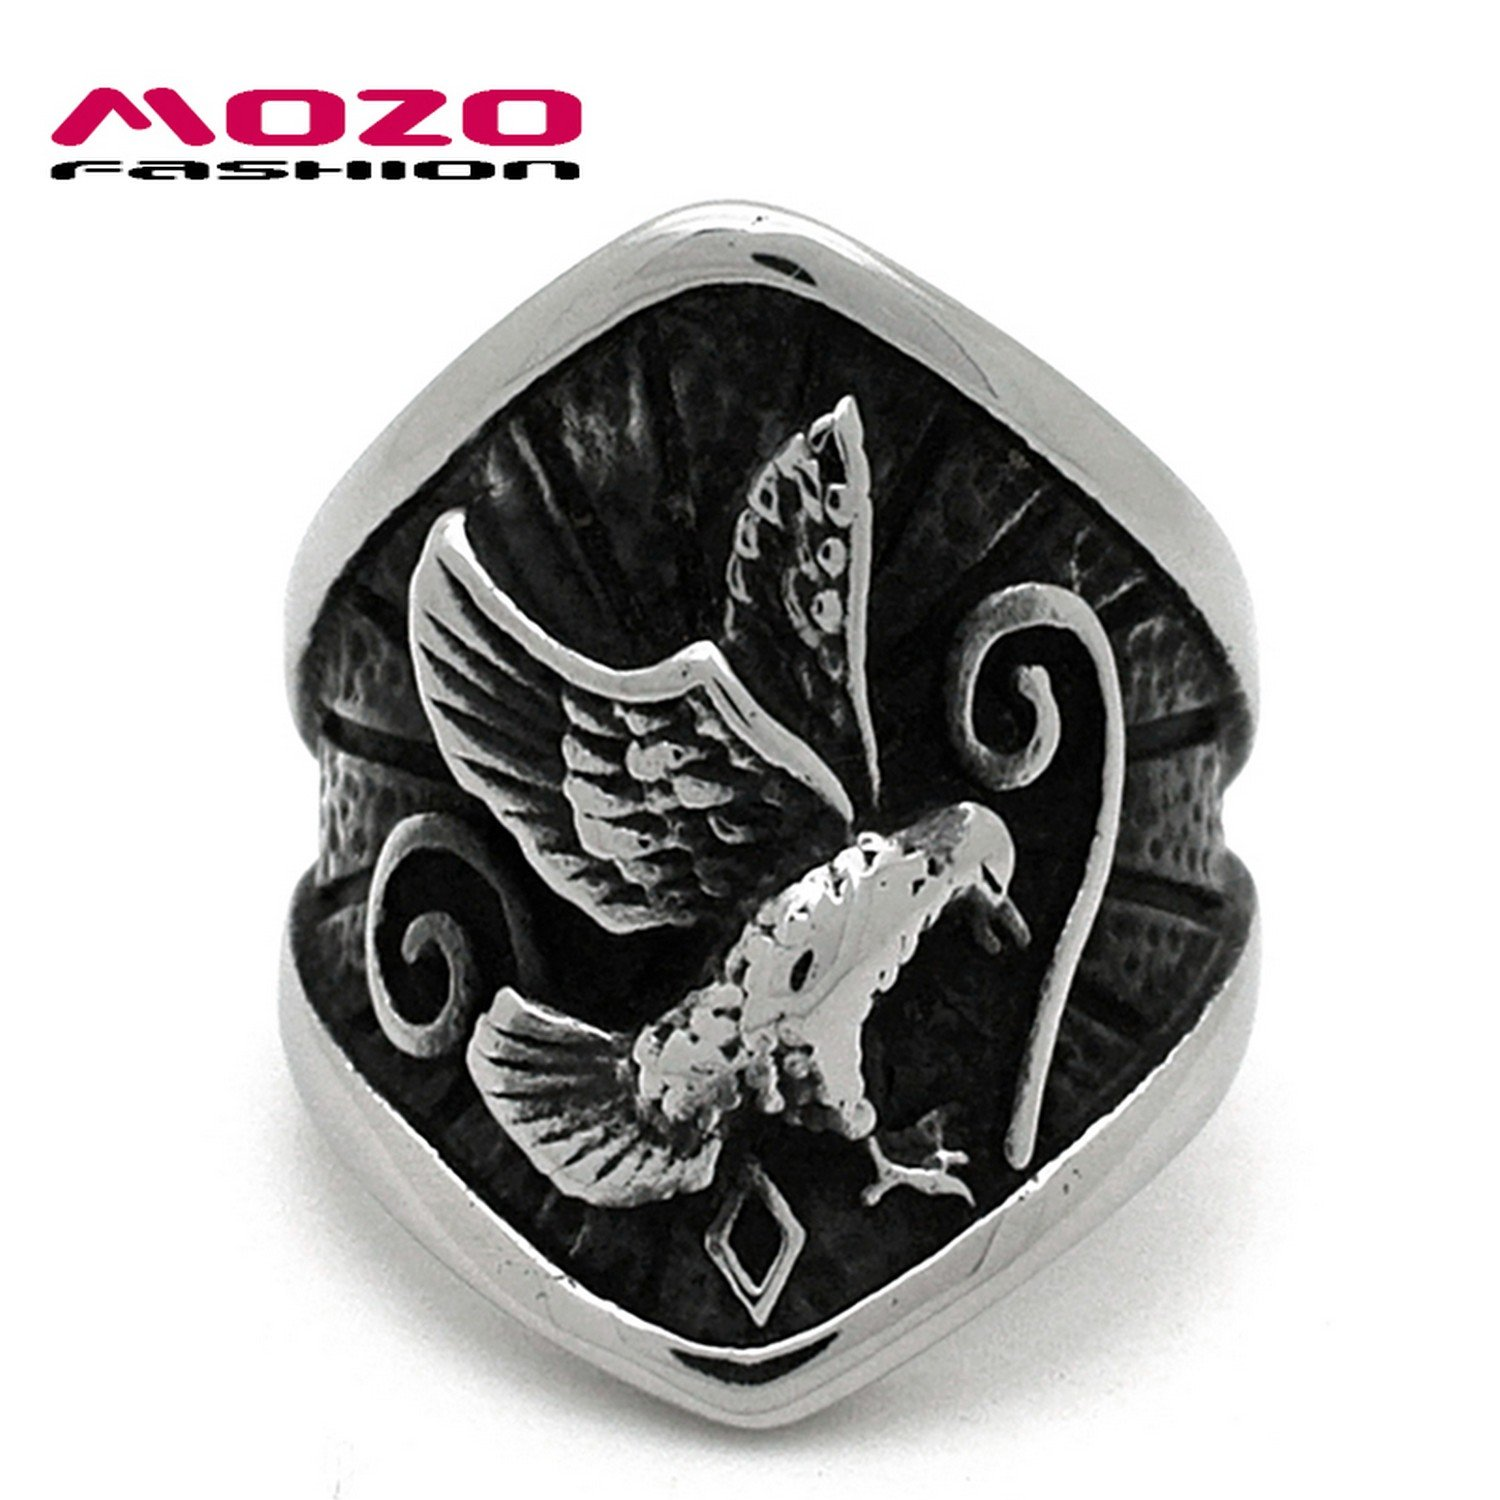 Cherryn Jewelry Fashion jewelry 316L stainless steel Ring Eagle pattern Punk OverbeaRing vintage men Ring cool for man MSA509